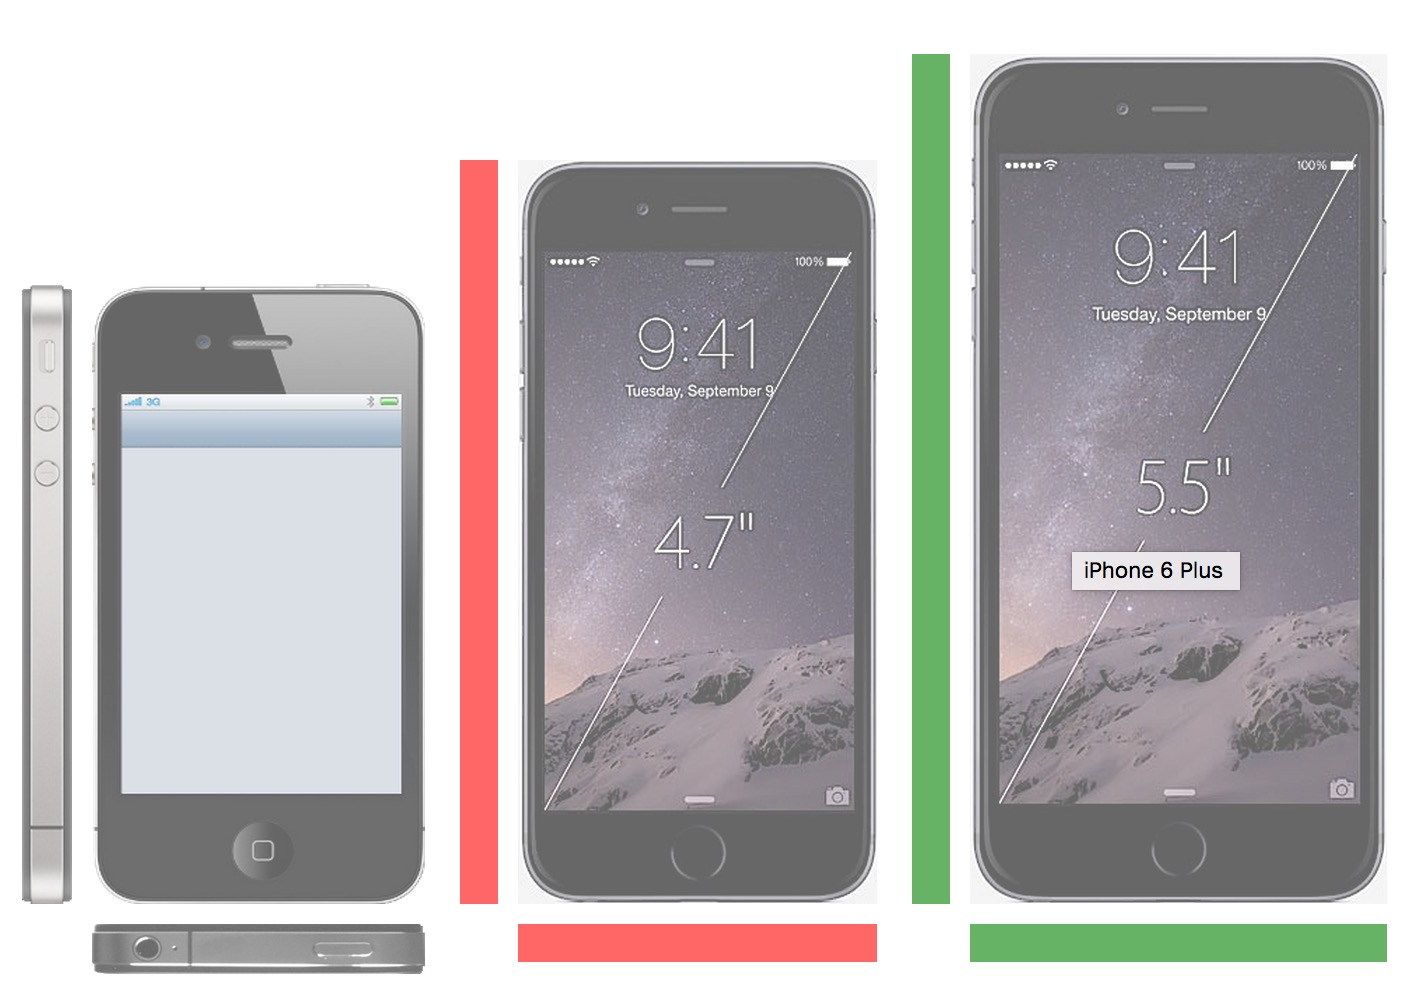 Tapered iPhone 6 Concept in Larger Sizes Shows New Home Screen ...